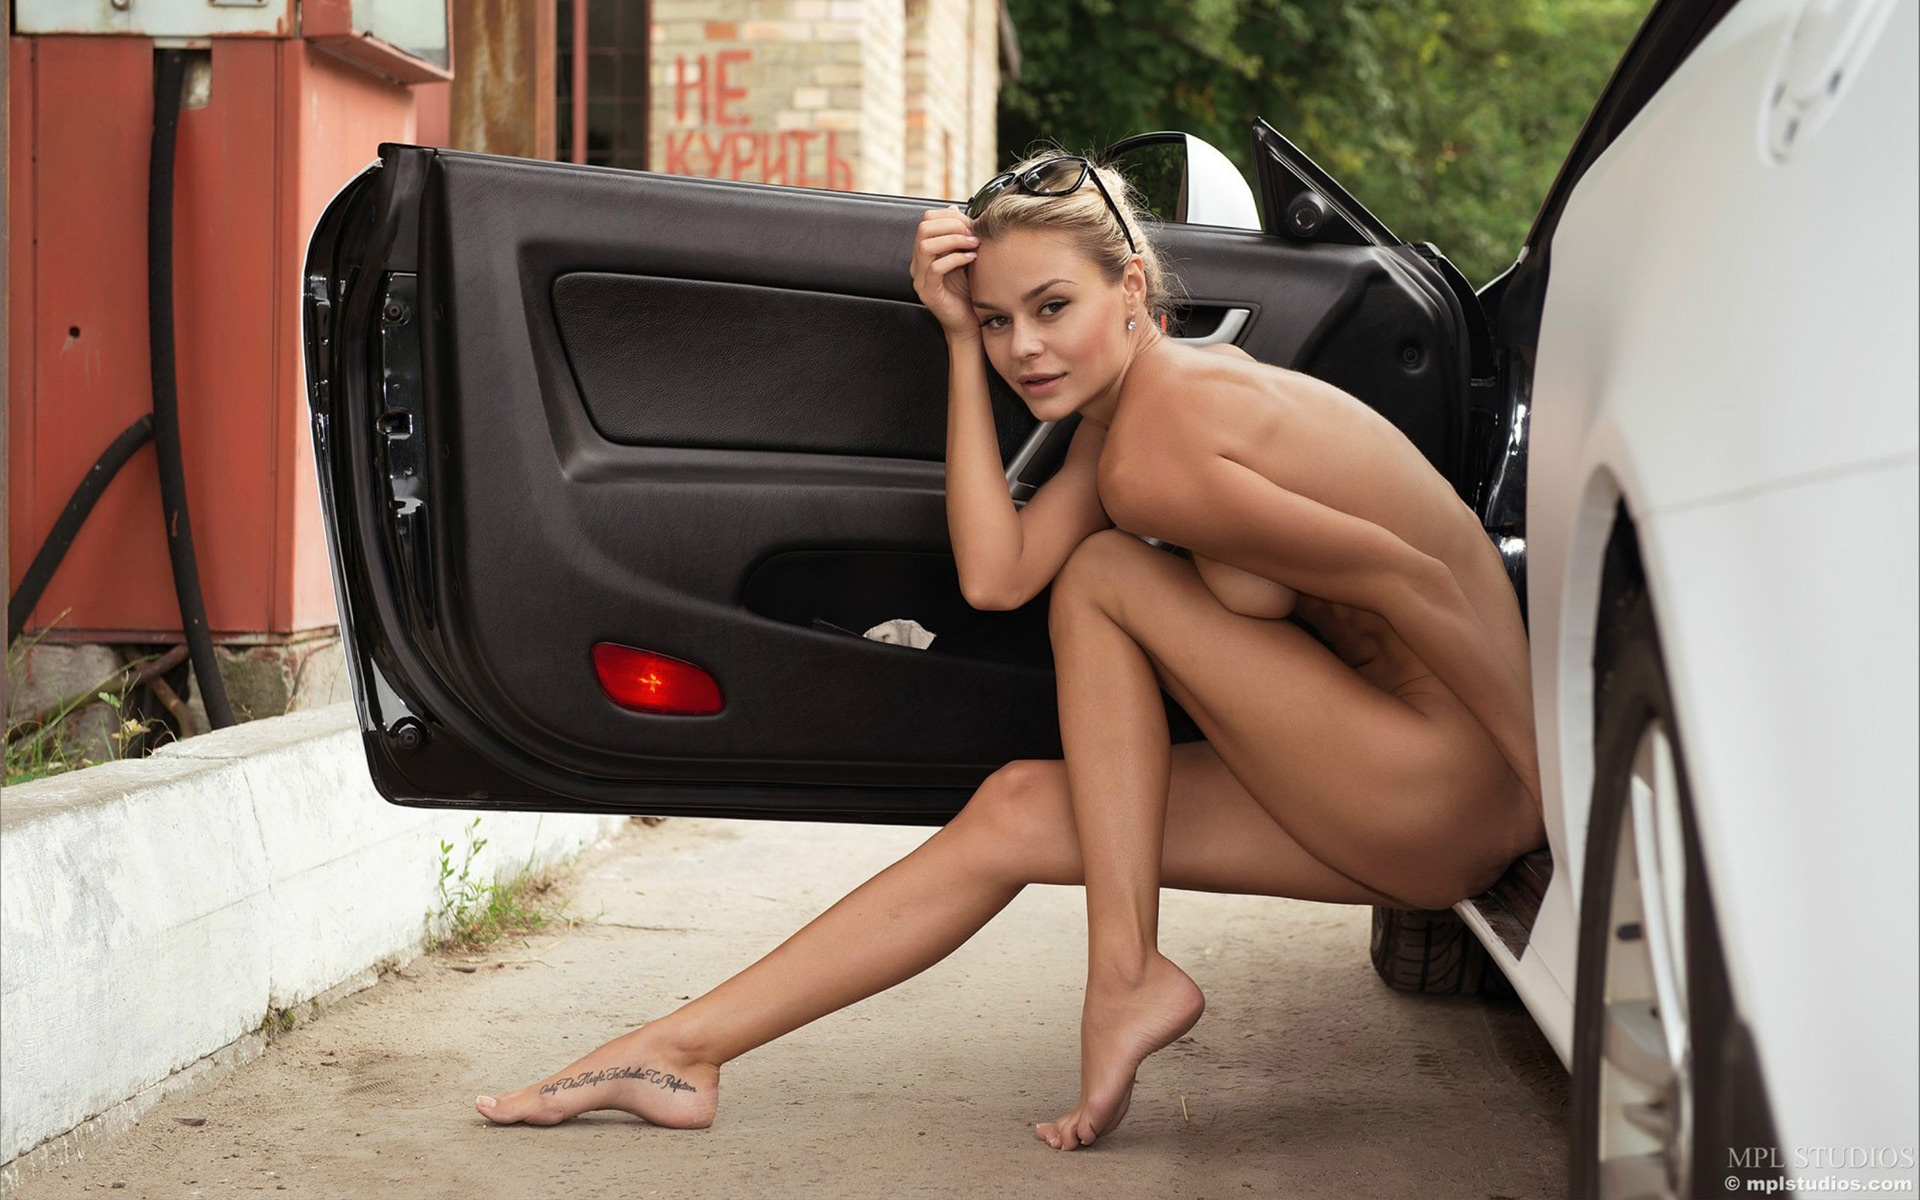 nude-blonde-and-car-1920x1200